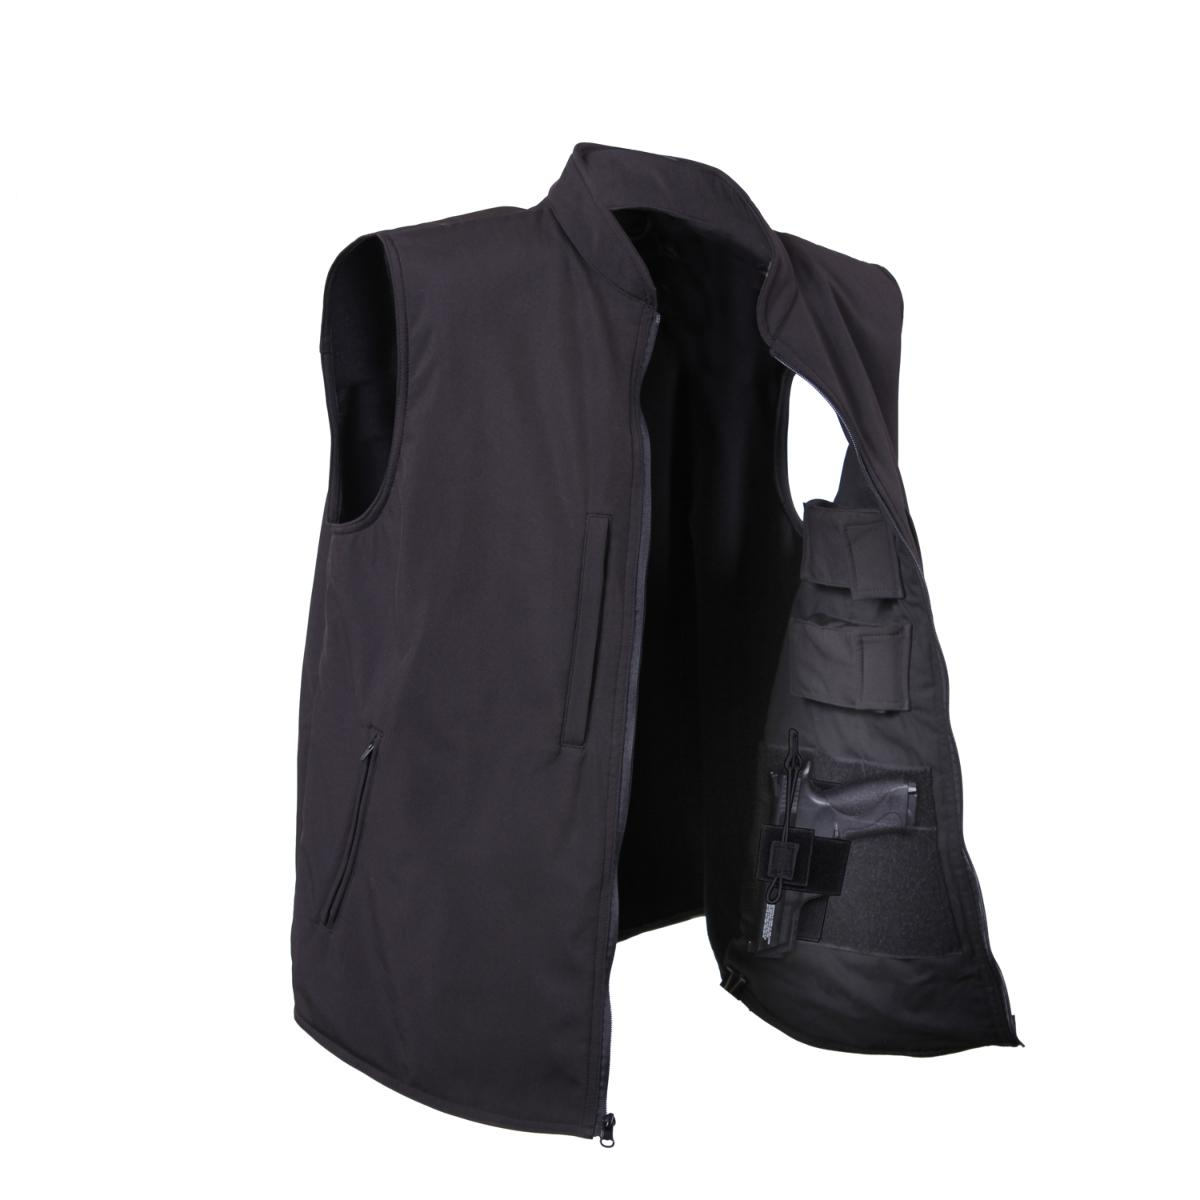 Rothco Concealed Carry Soft Shell Shell Soft Vest 12d804